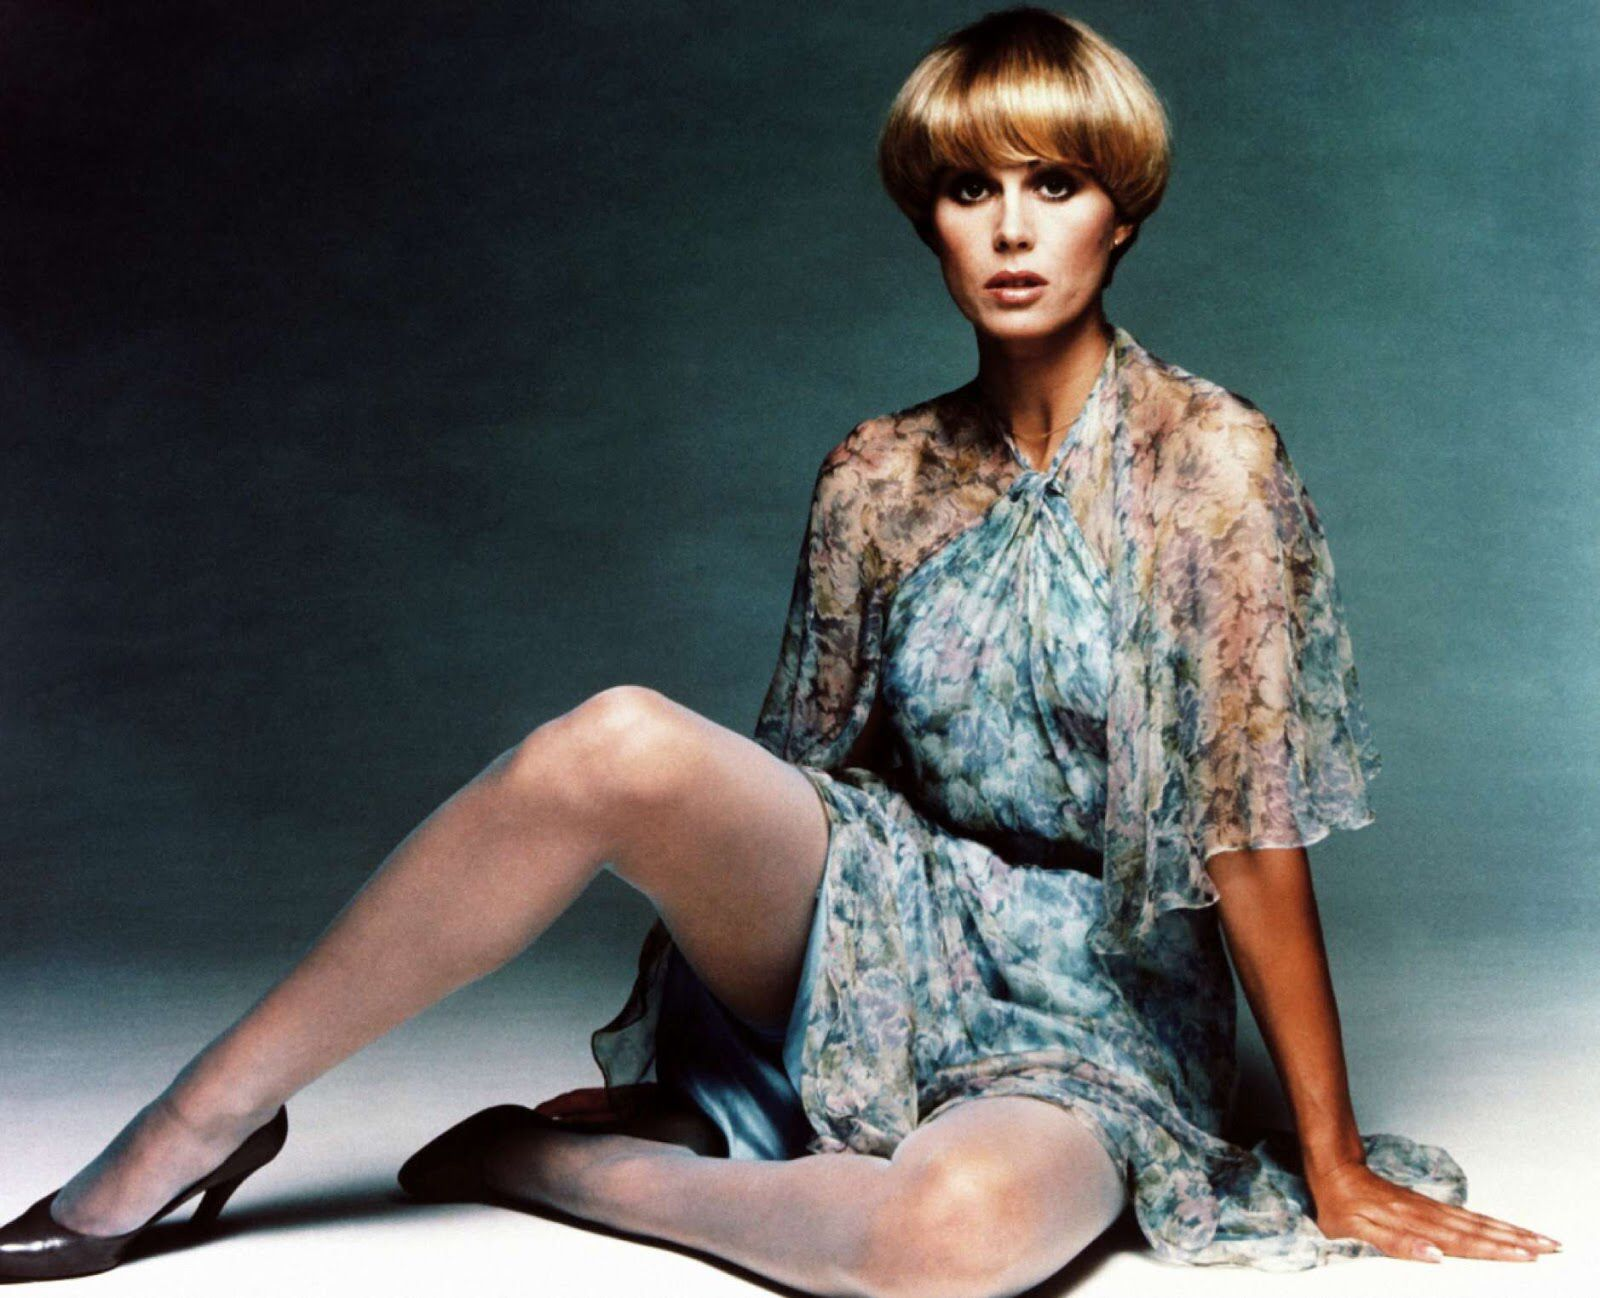 Purdey on the New Avengers (With images) | Joanna lumley ...